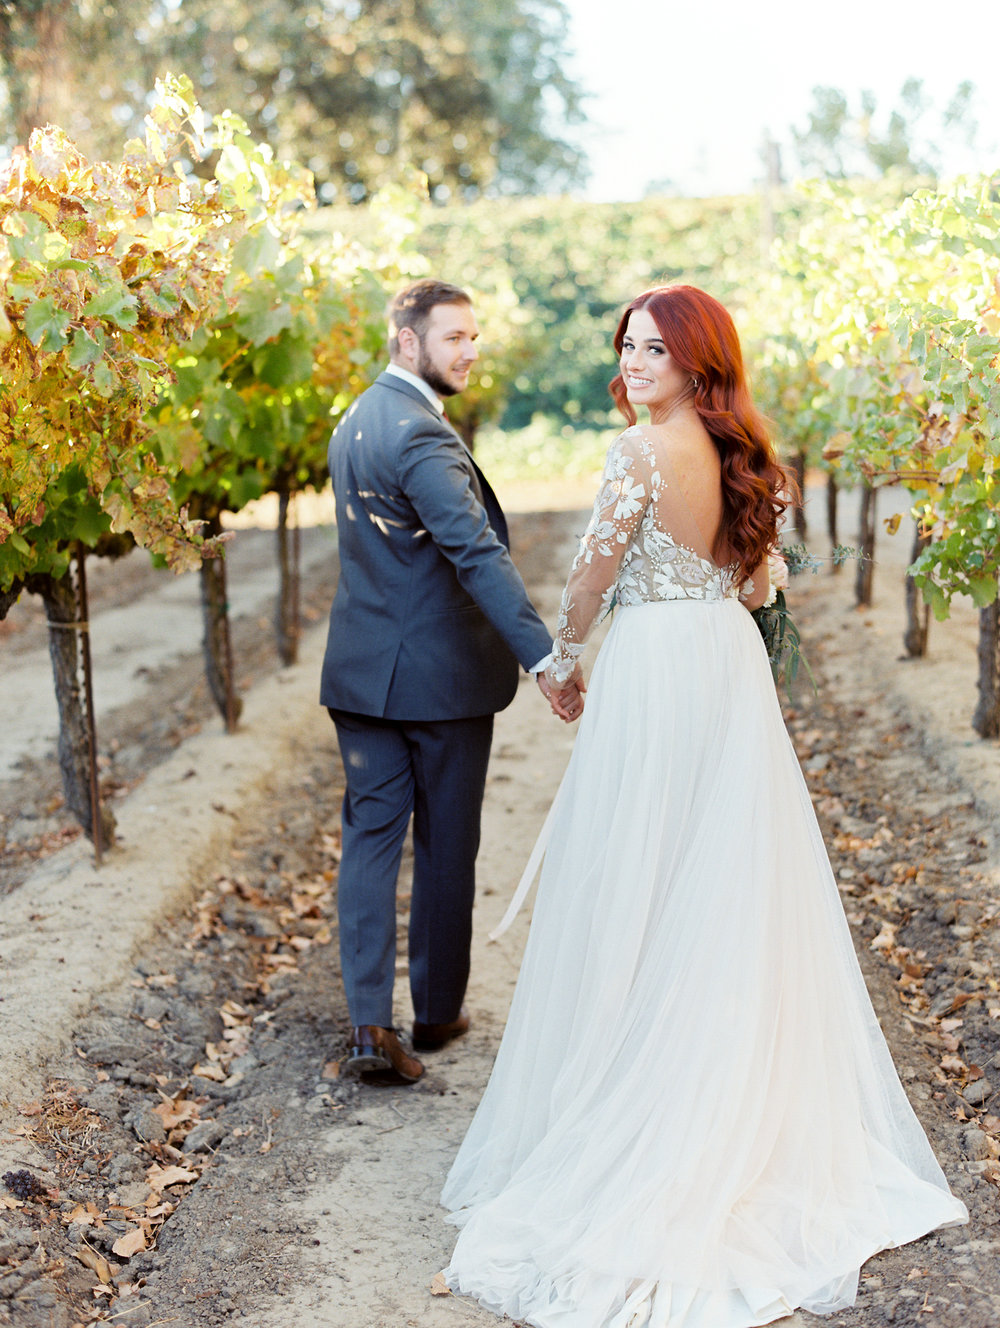 scribner-bend-vineyards-wedding-in-sacramento-california-40.jpg